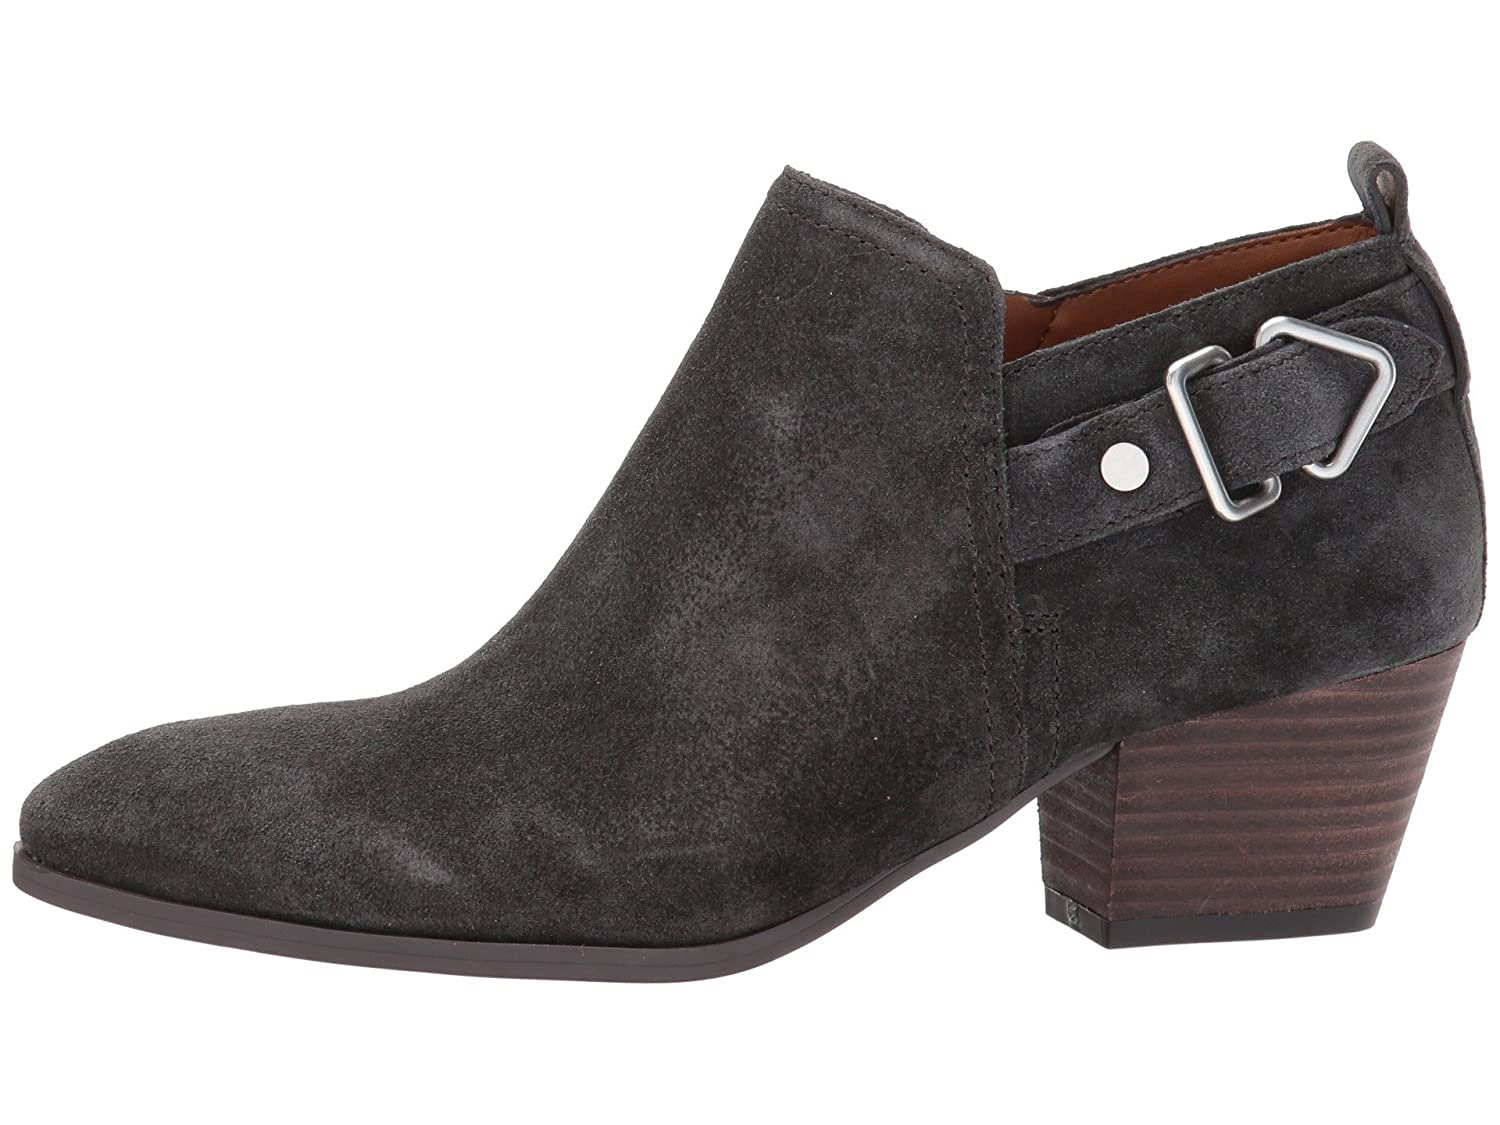 Franco Sarto Womens Garfield Bootie B0762T9HY6 6 C/D US|Peat Suede